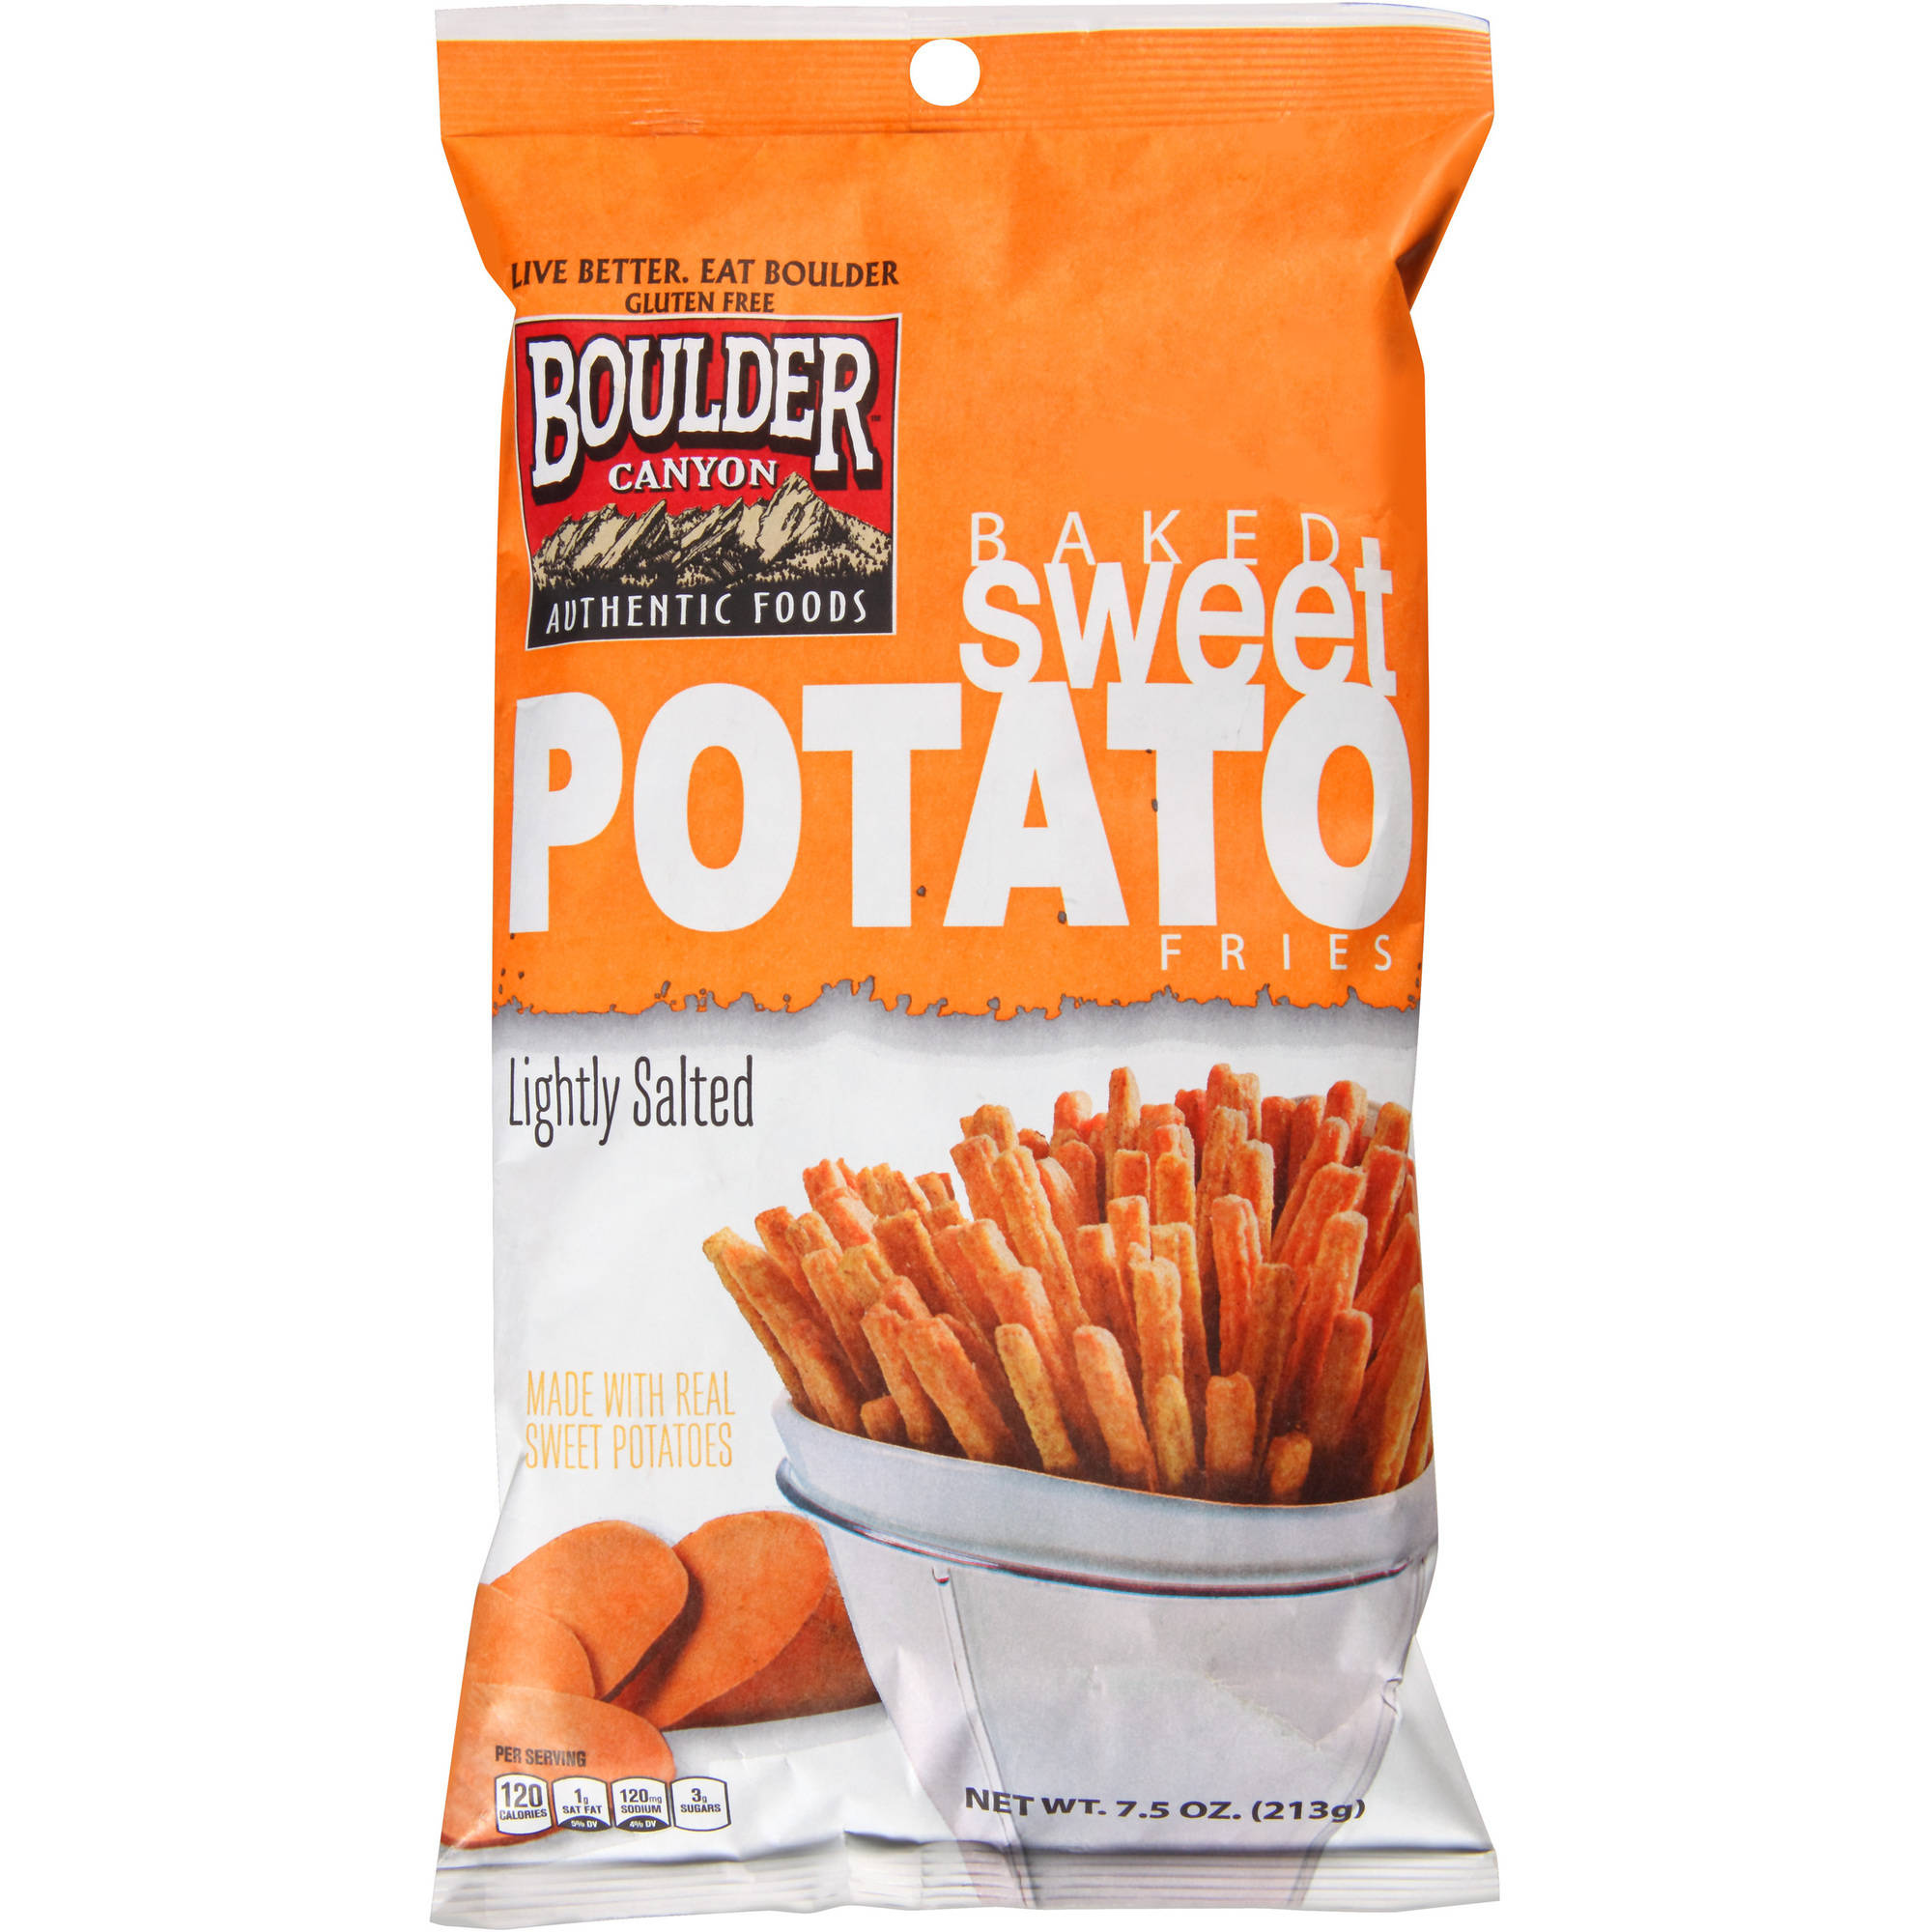 Boulder Canyon Natural Foods Lightly Salted Baked Sweet Potato Fries, 7.5 oz by inventure foods